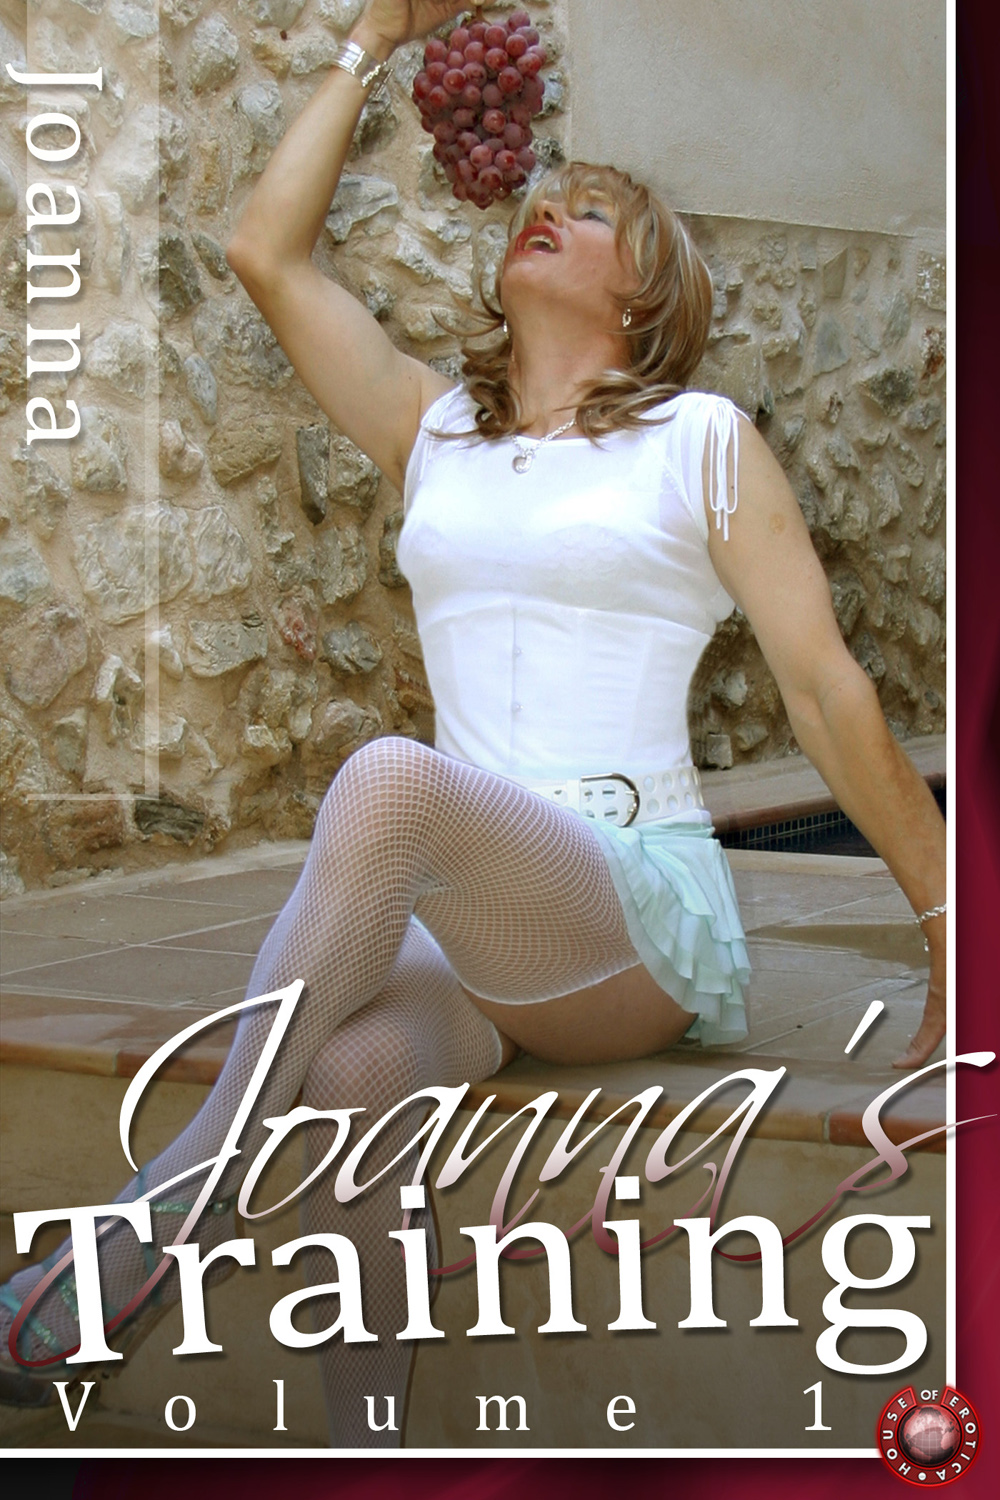 Joanna's Training - Volume 1